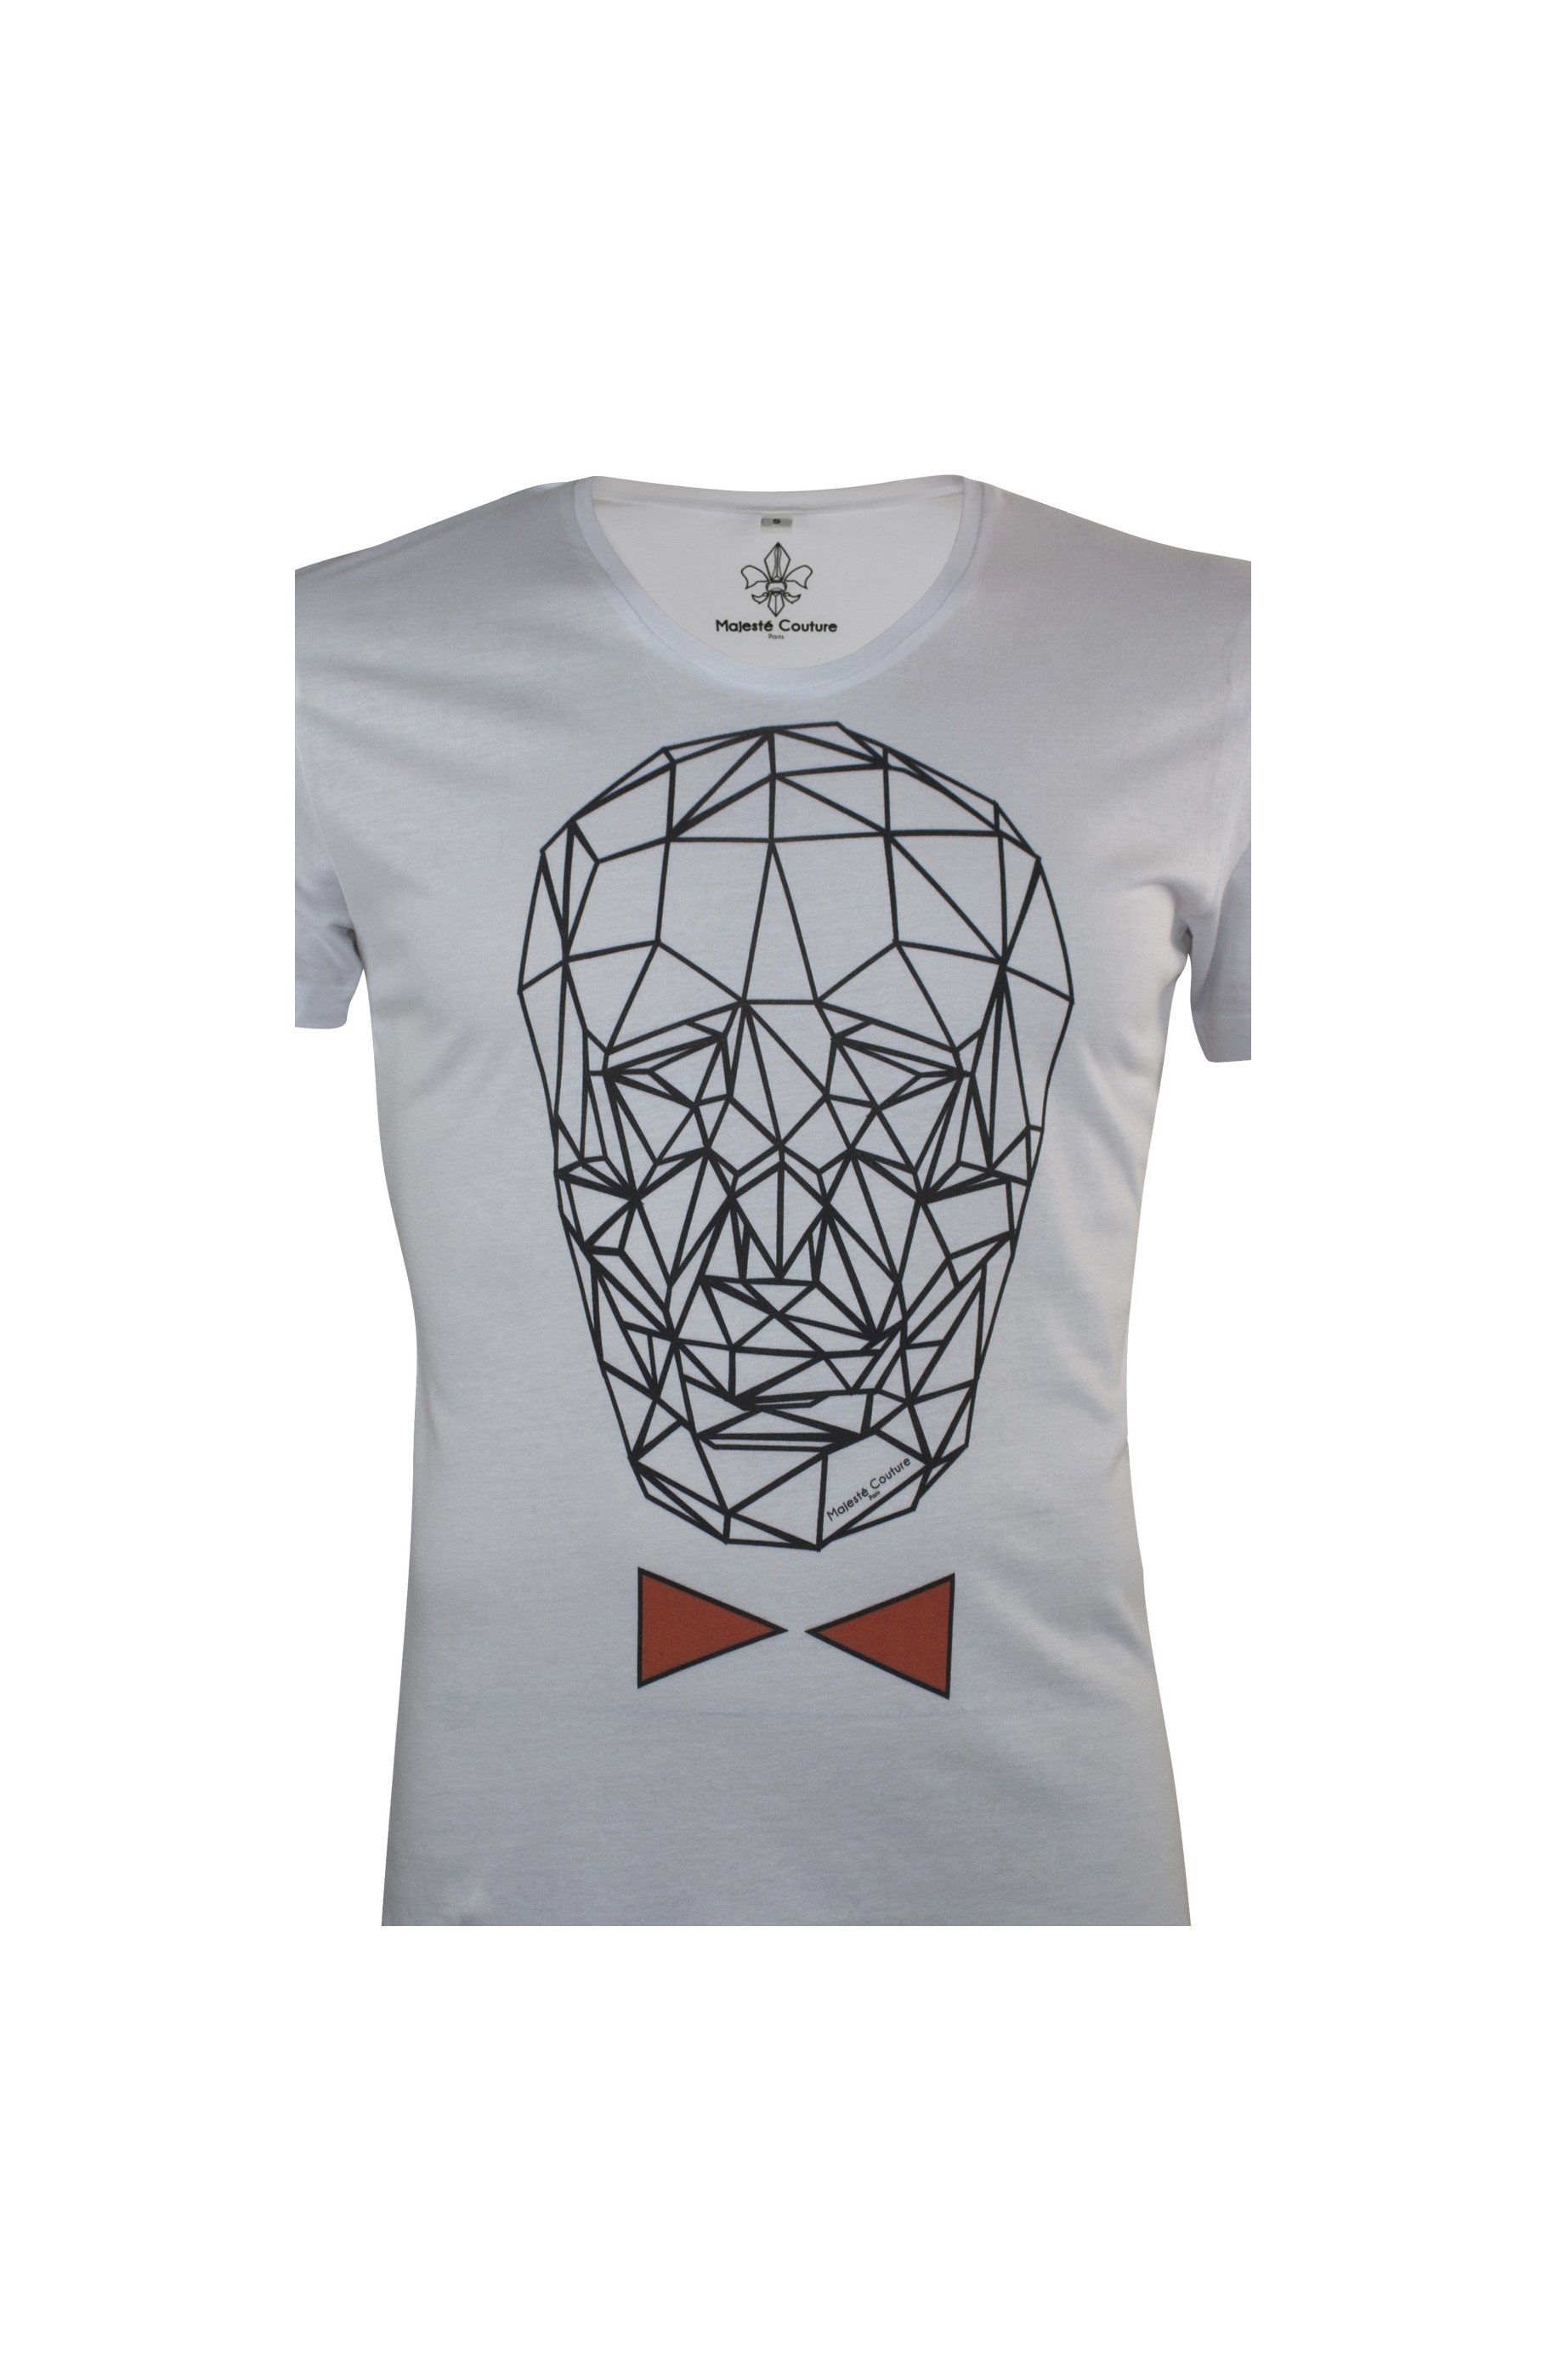 Majesté Couture Paris: WHITE & RED GRAPHIC_TDM T-SHIRT | Clothing,Clothing > T-Shirts -  Hiphunters Shop